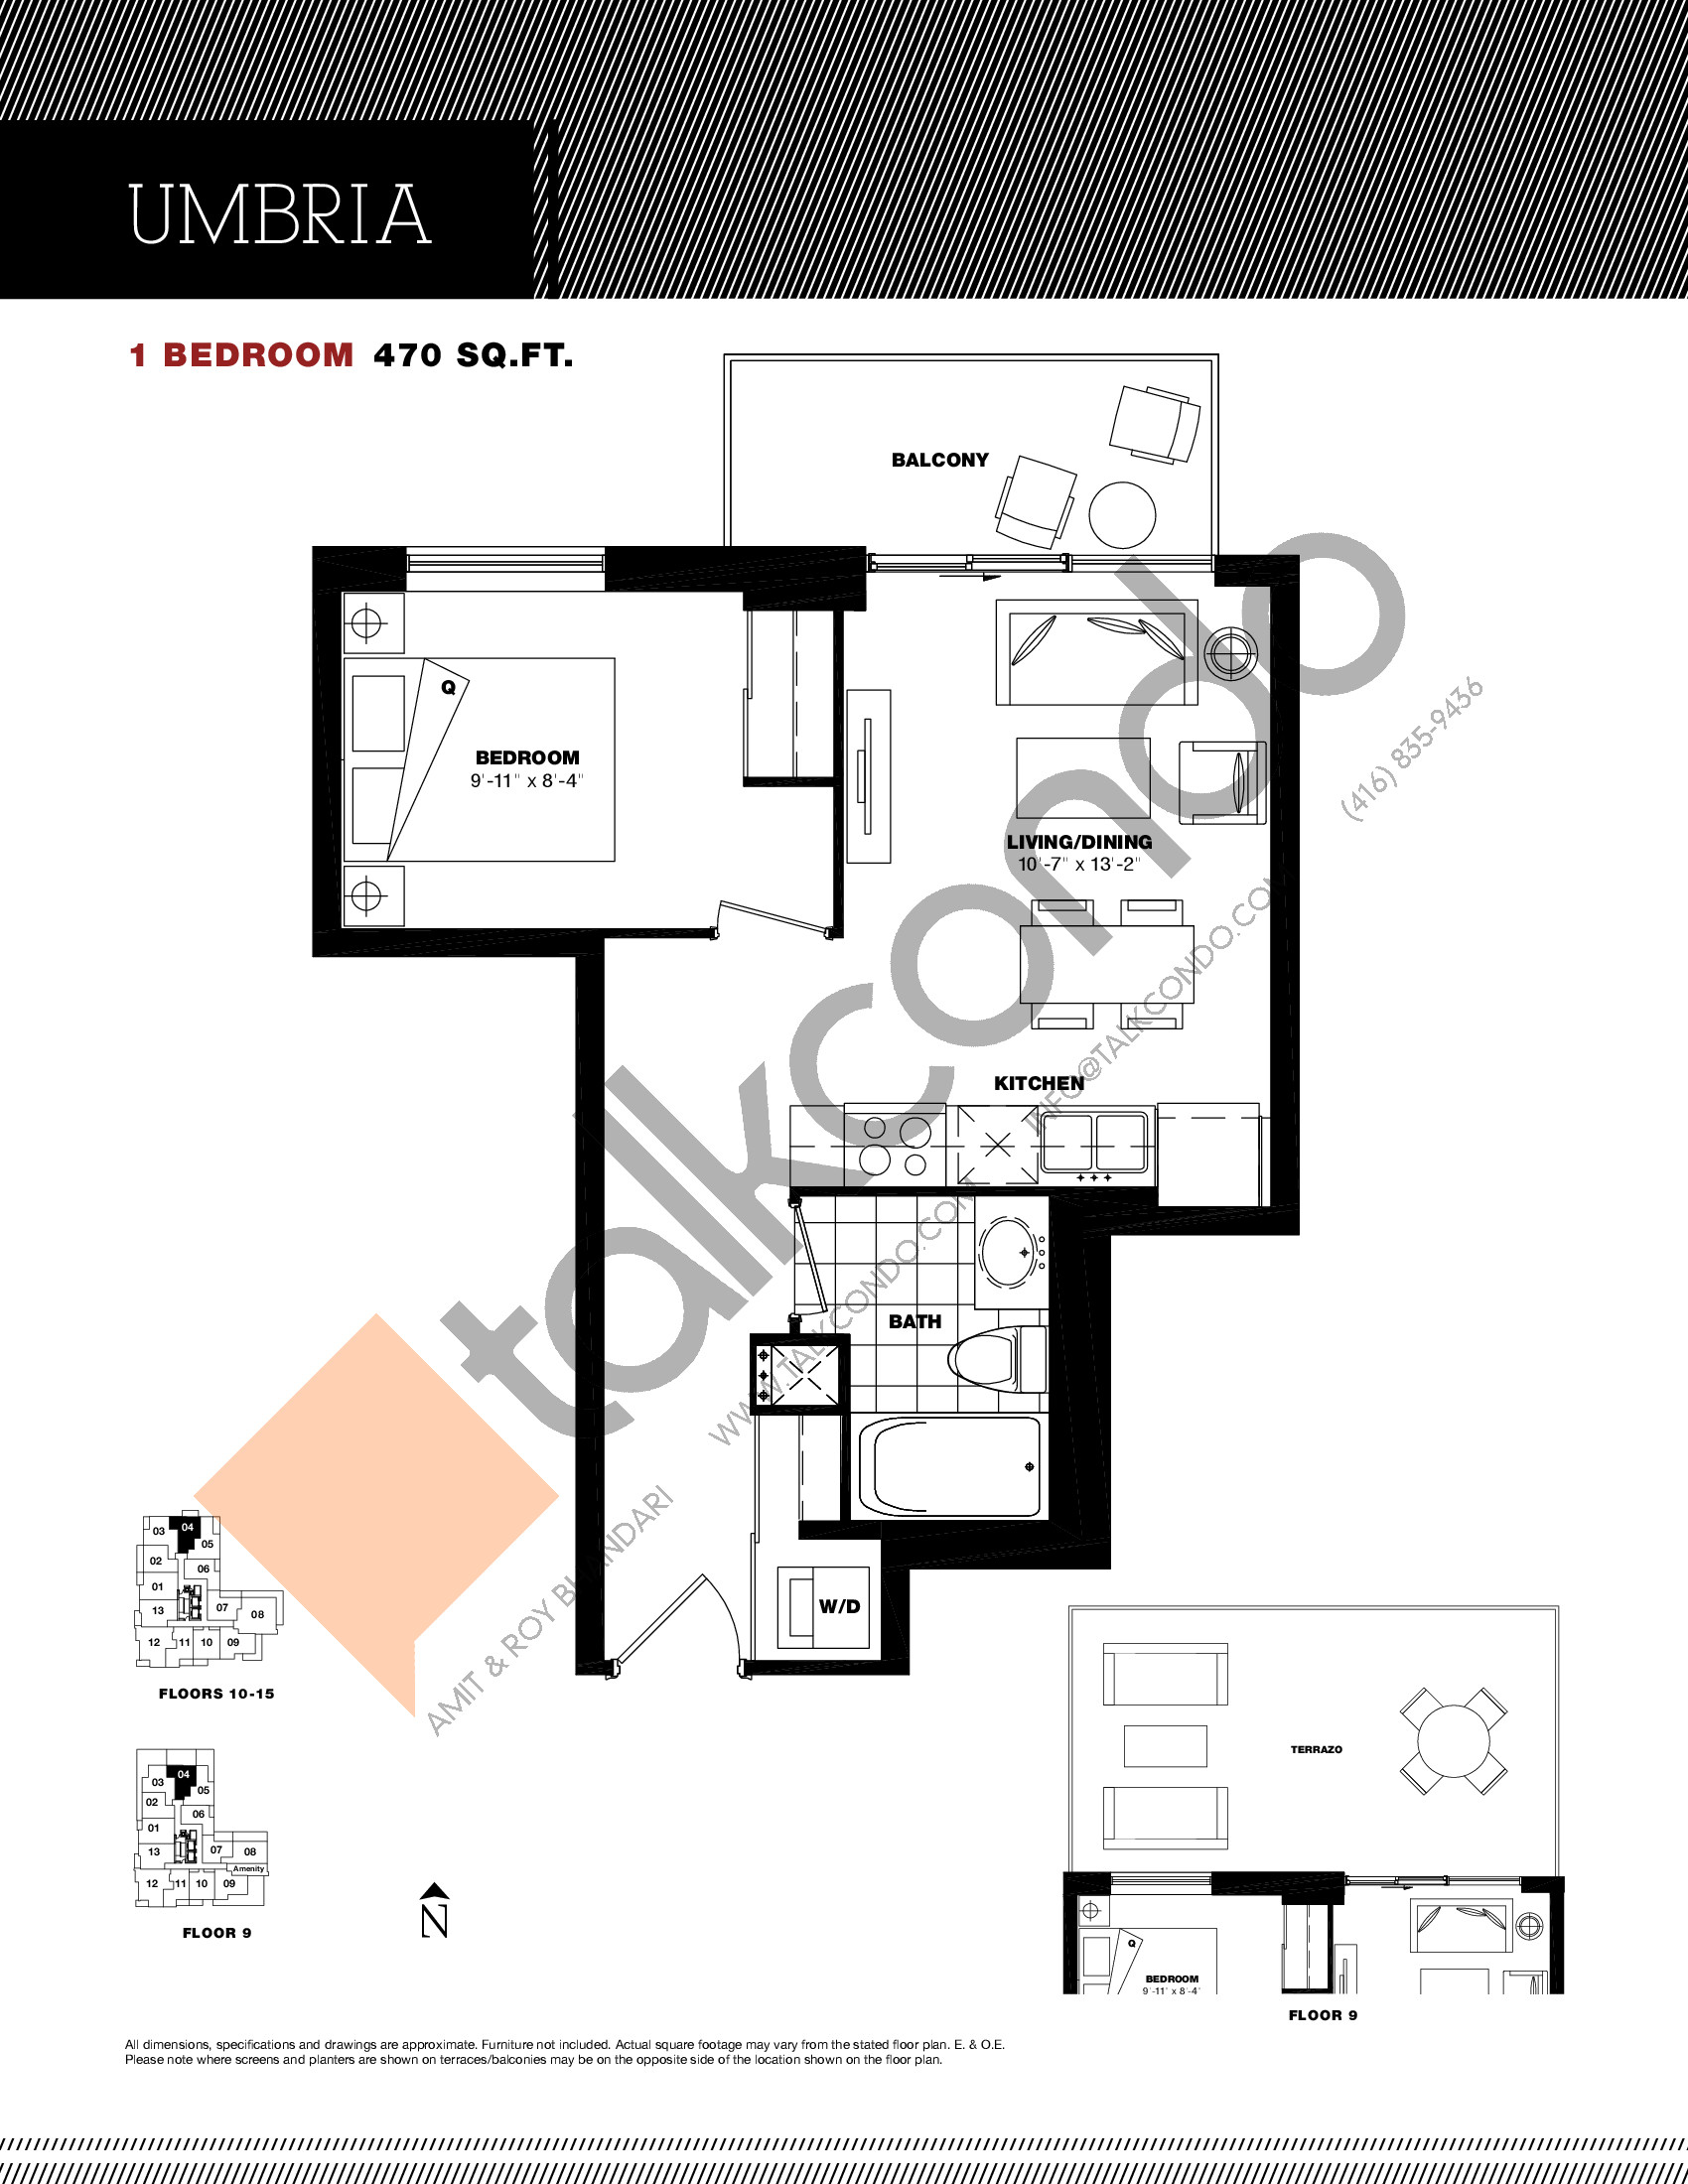 Umbria Floor Plan at Residenze Palazzo at Treviso 3 Condos - 470 sq.ft